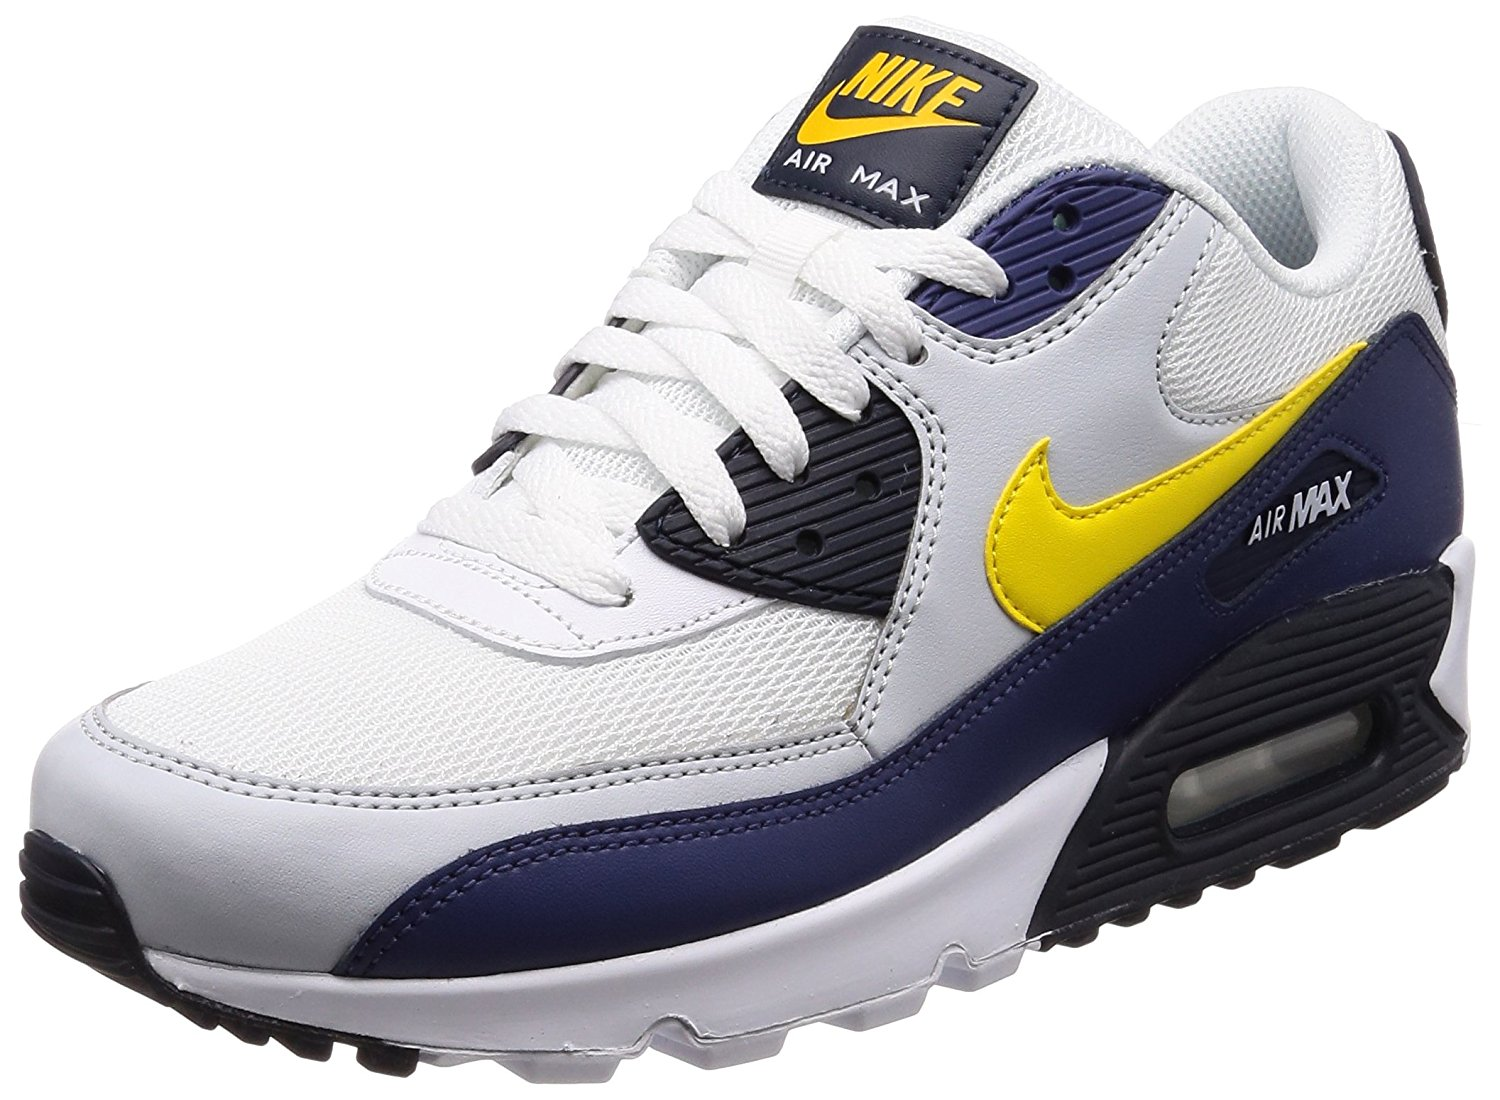 The World Of RetroVintage: women air max 2005 vintage